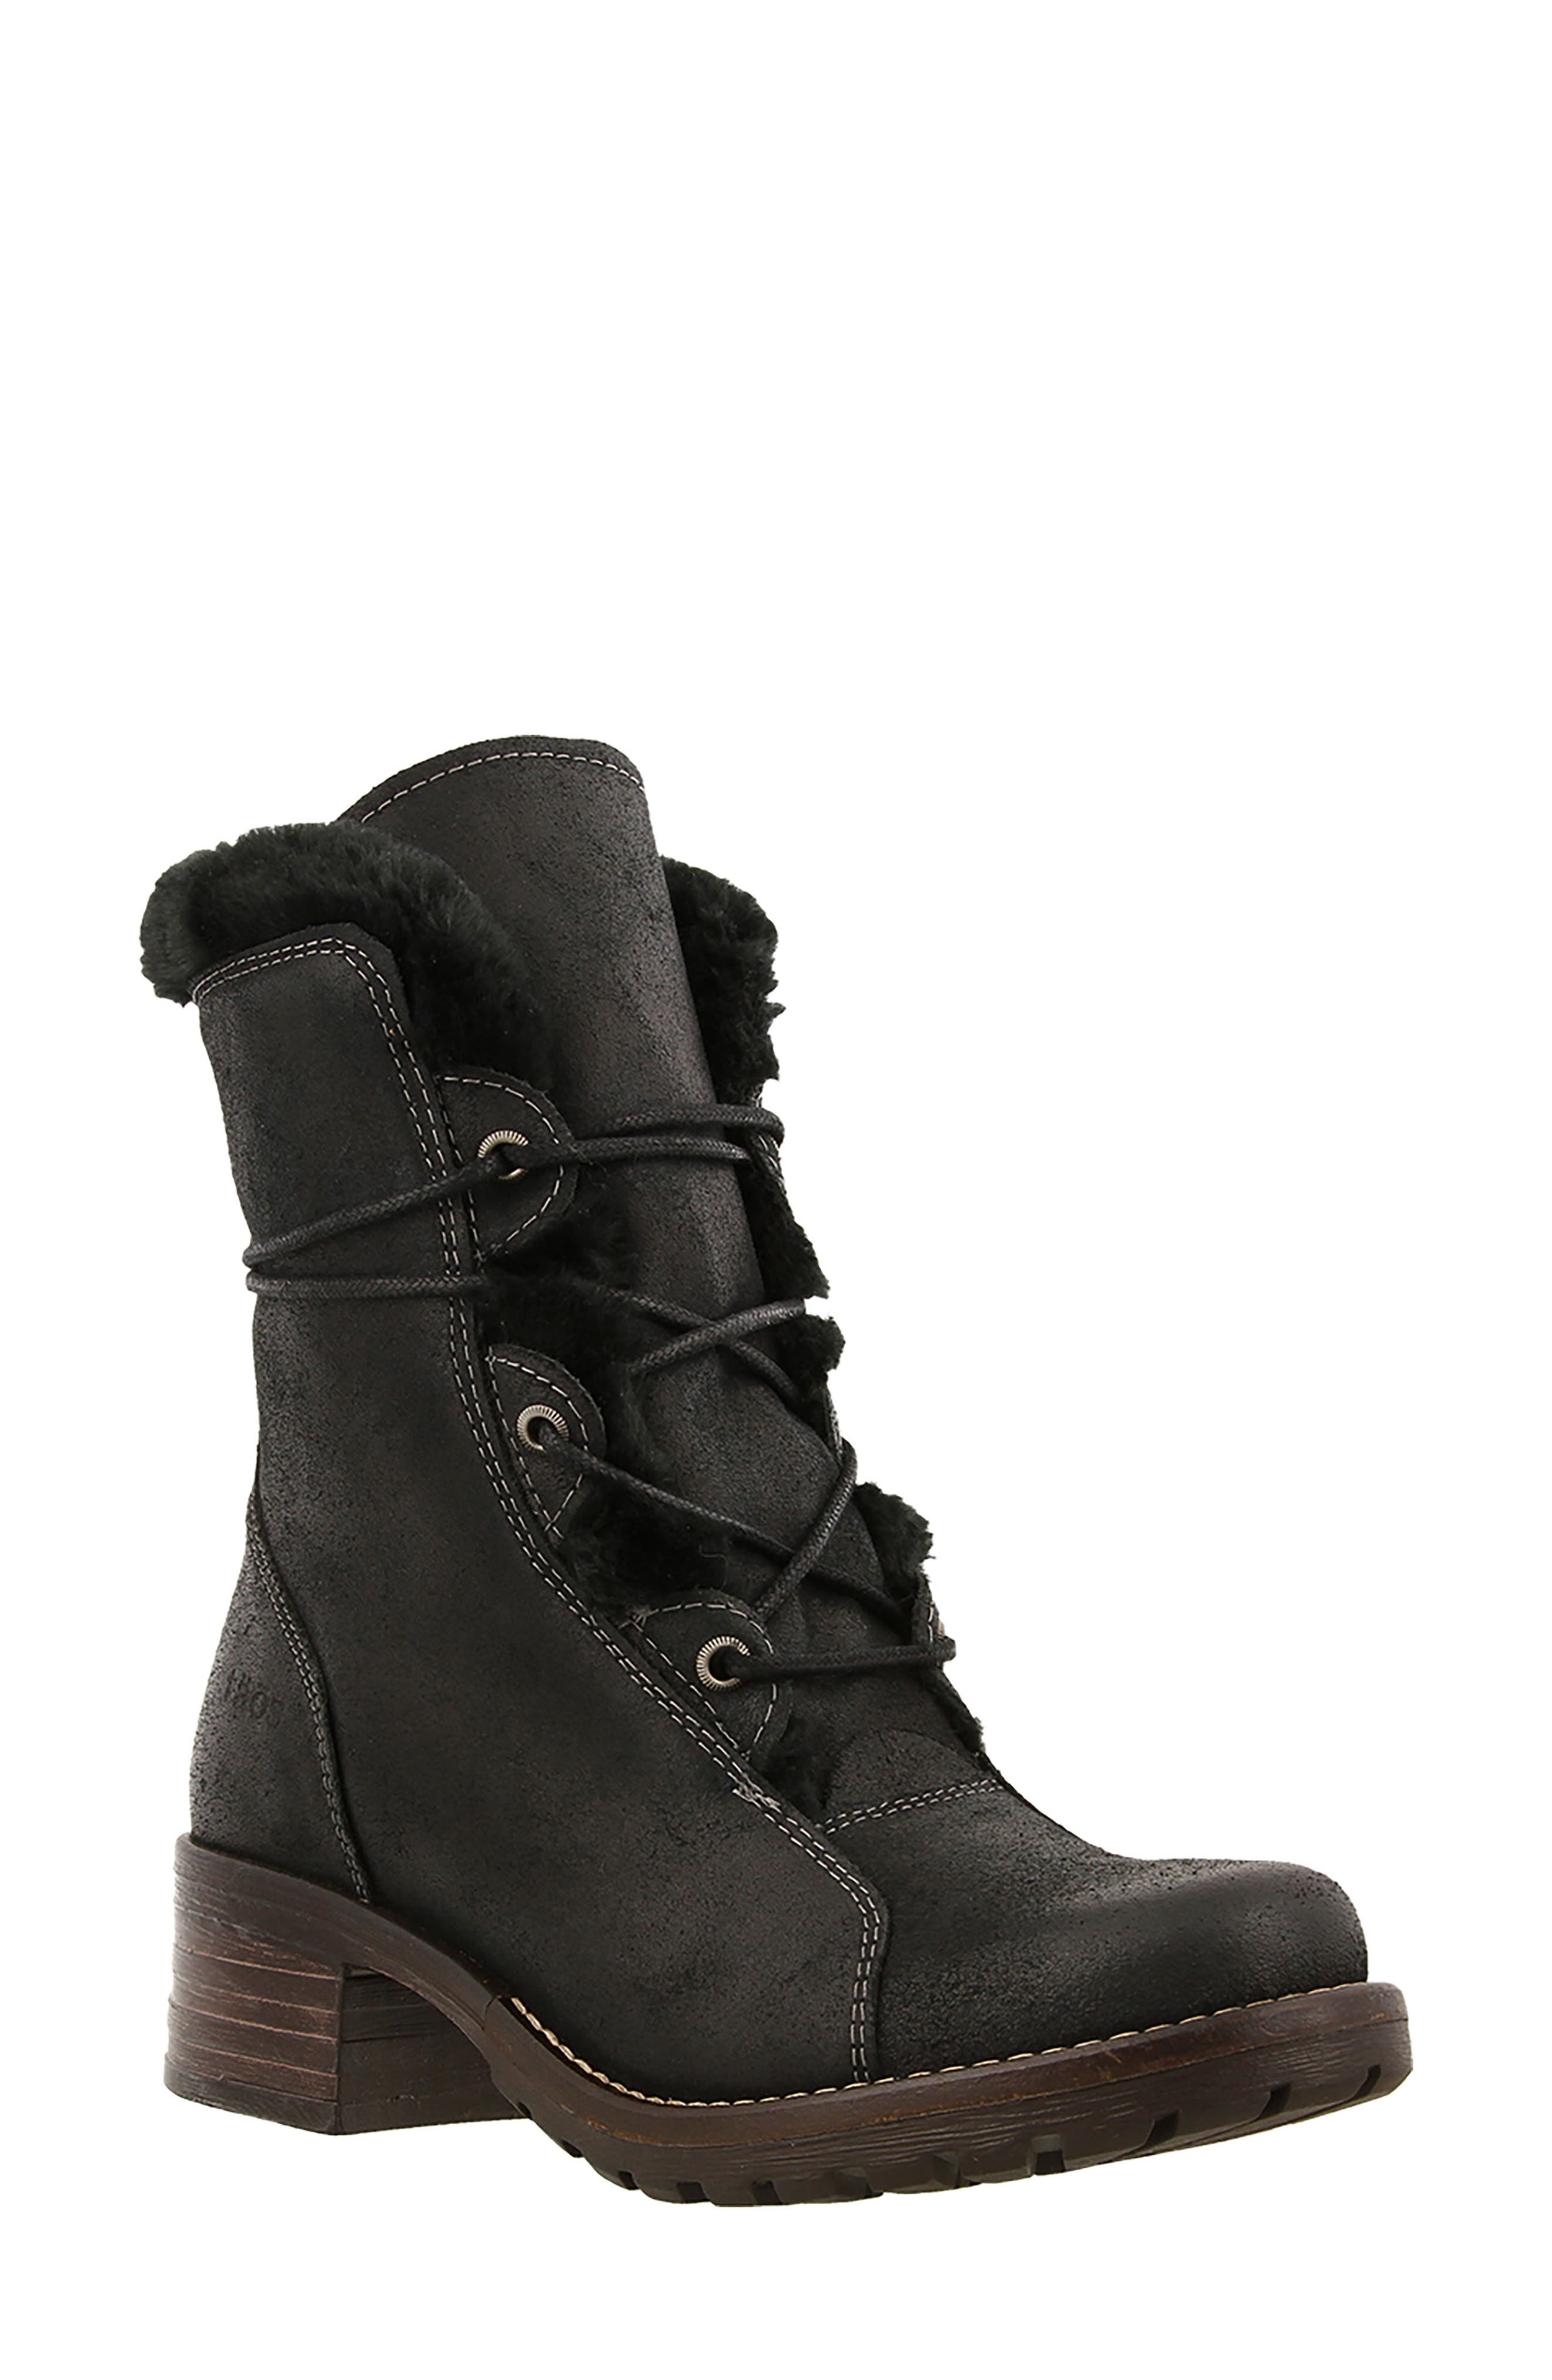 Alternate Image 1 Selected - Taos Furkle Boot with Faux Fur Trim (Women)